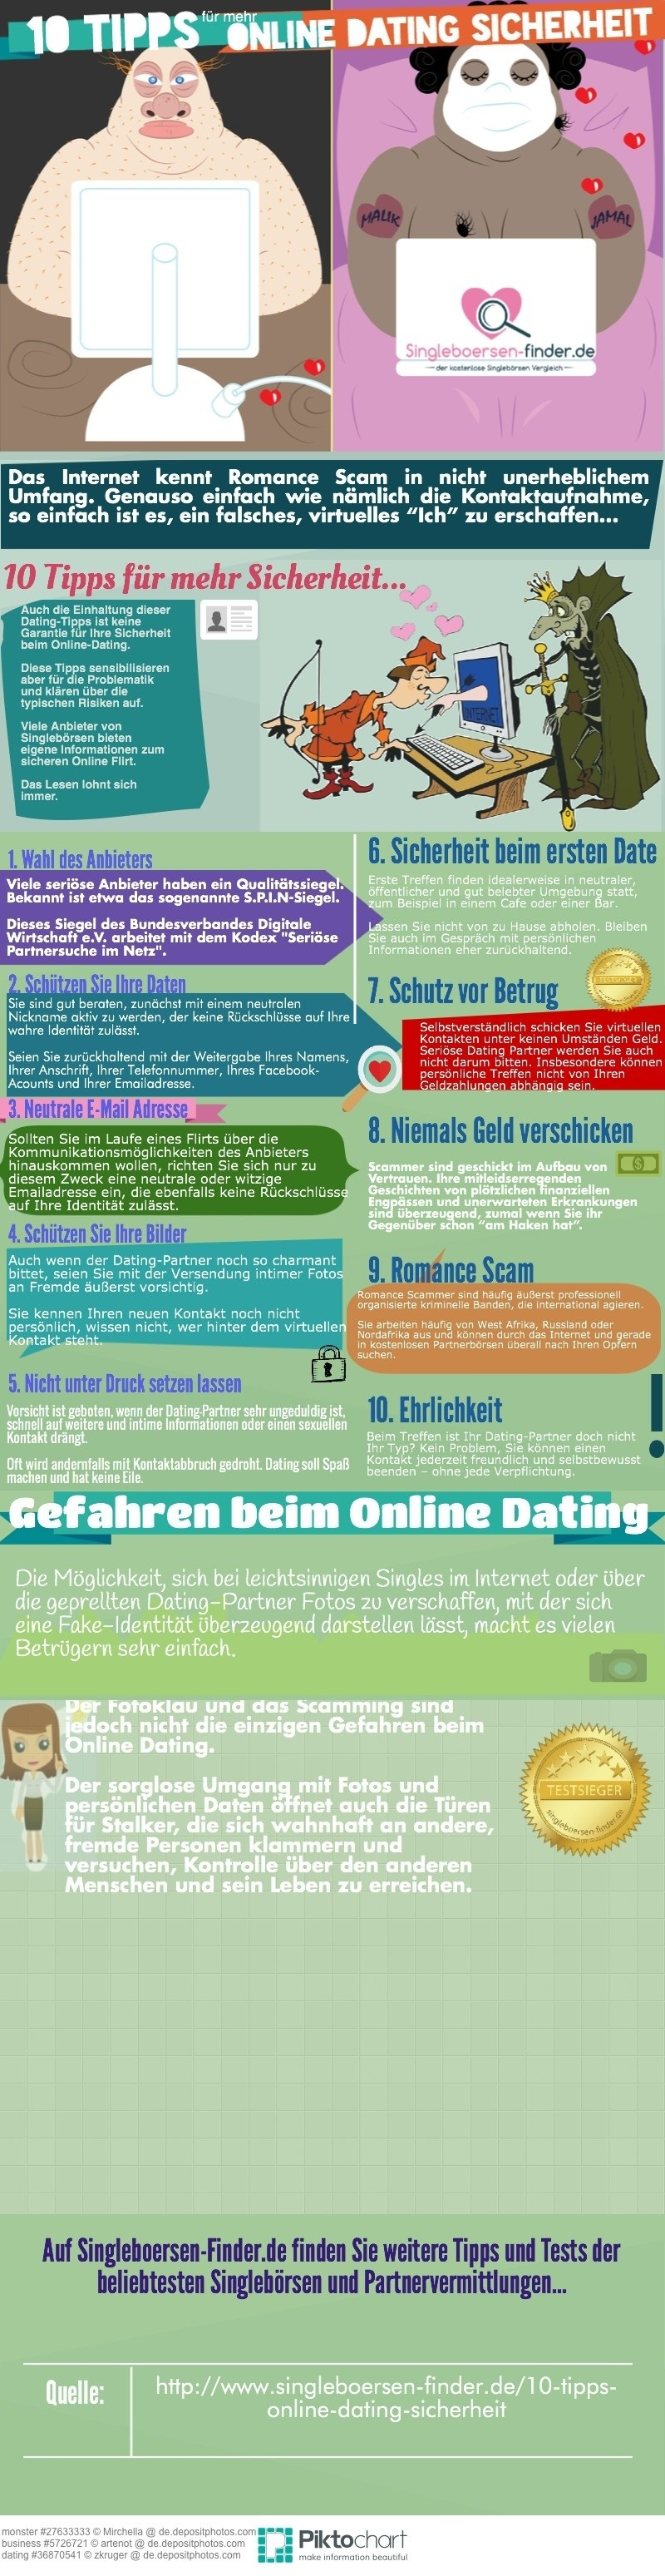 25 Jahre alte Dating-Website